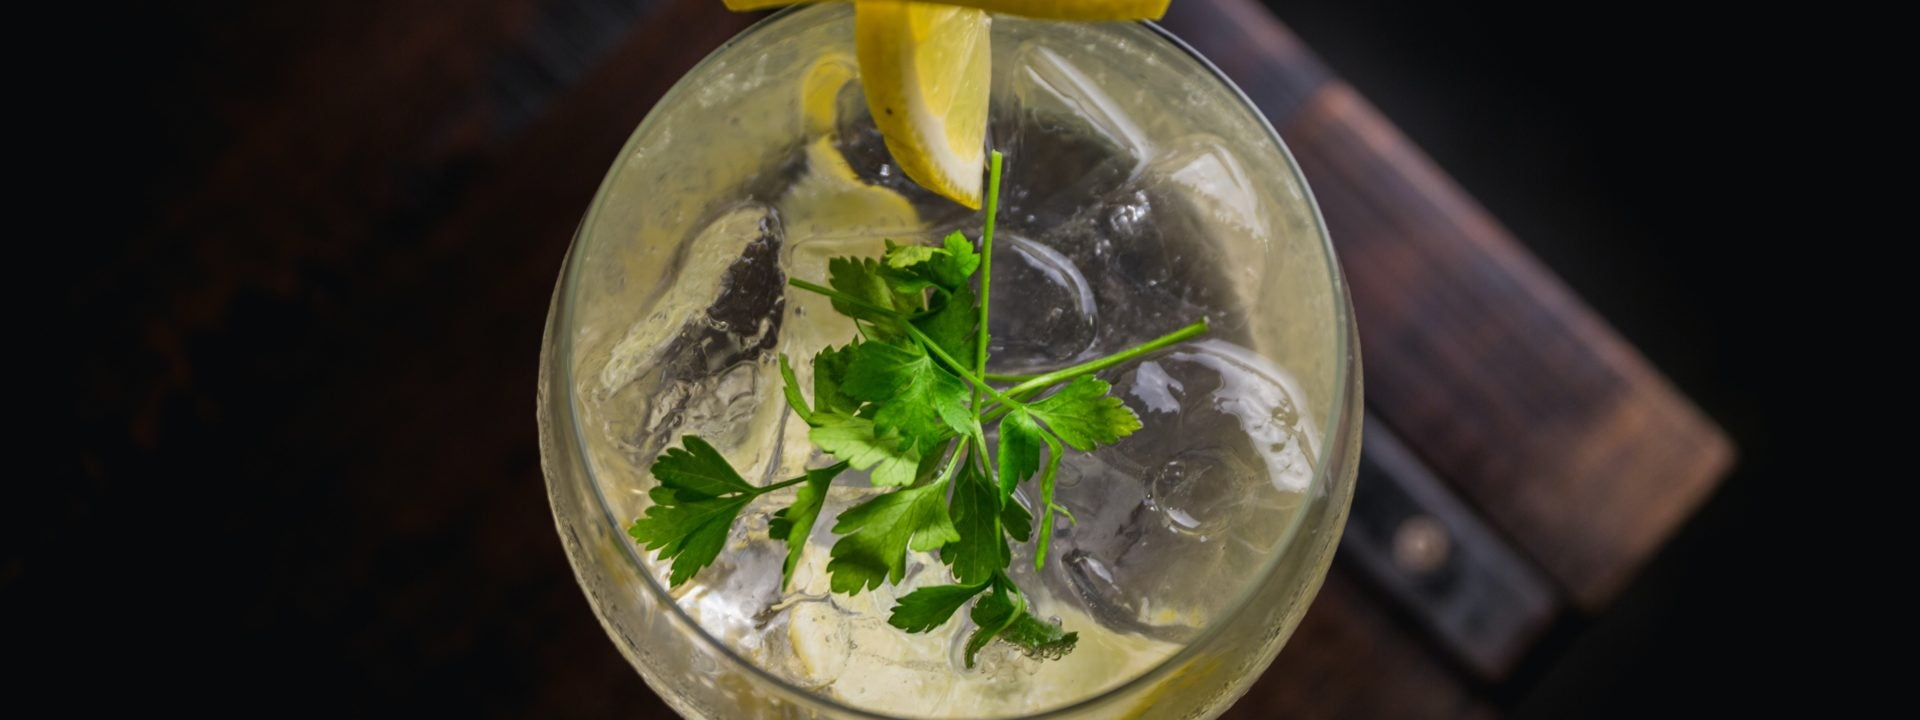 How to perfectly garnish your favourite gins